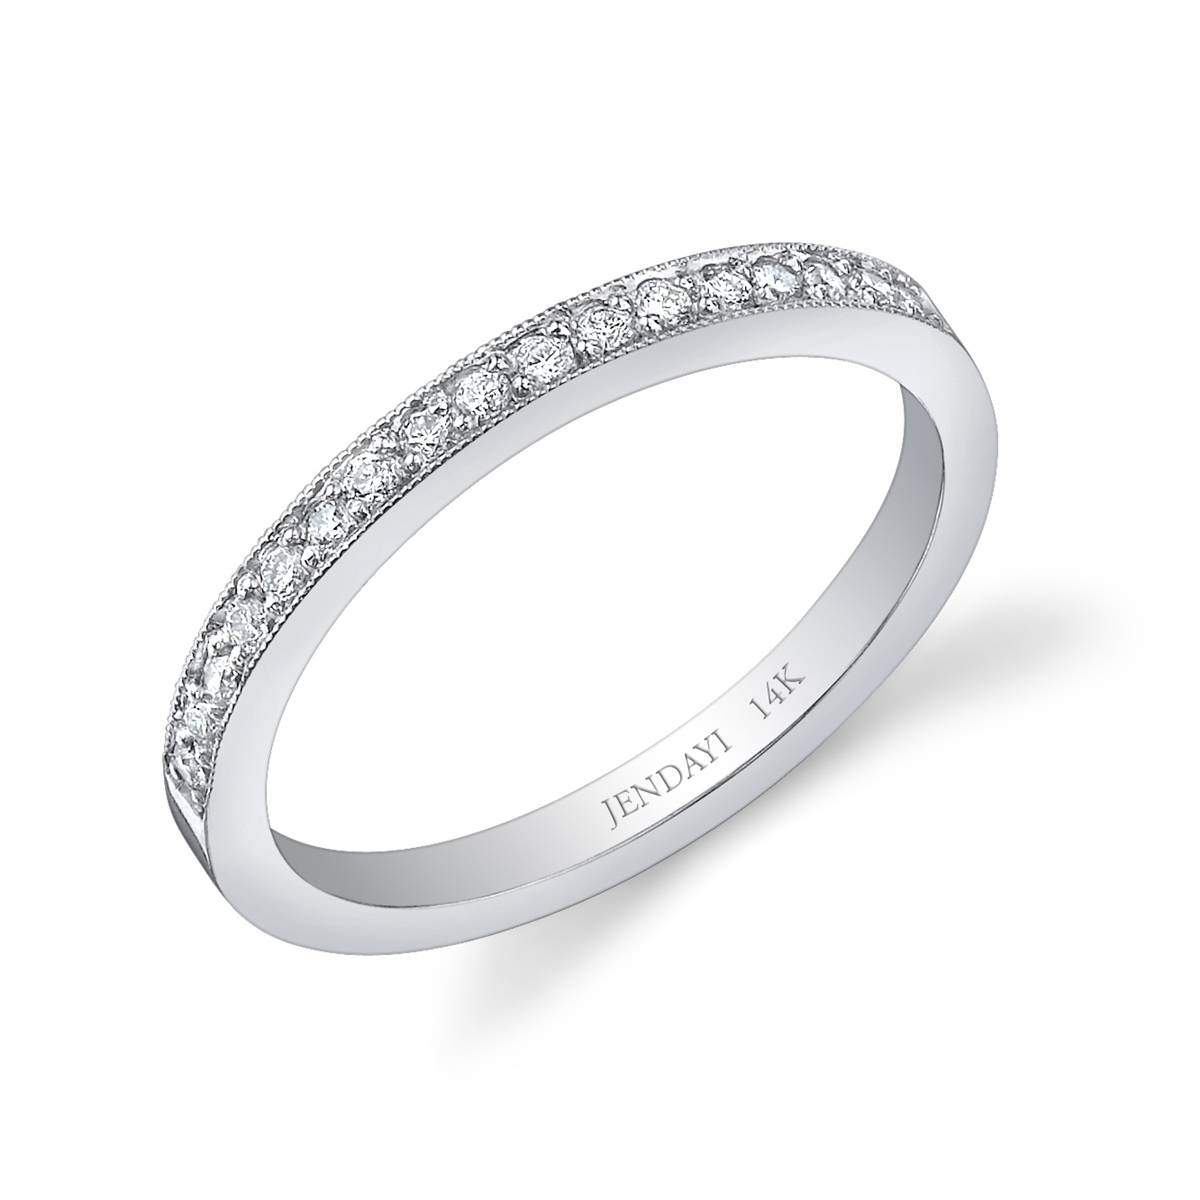 14K White Gold Diamond Wedding Band Pavã© For Recent Pave White Gold Diamond Wedding Bands (View 1 of 15)